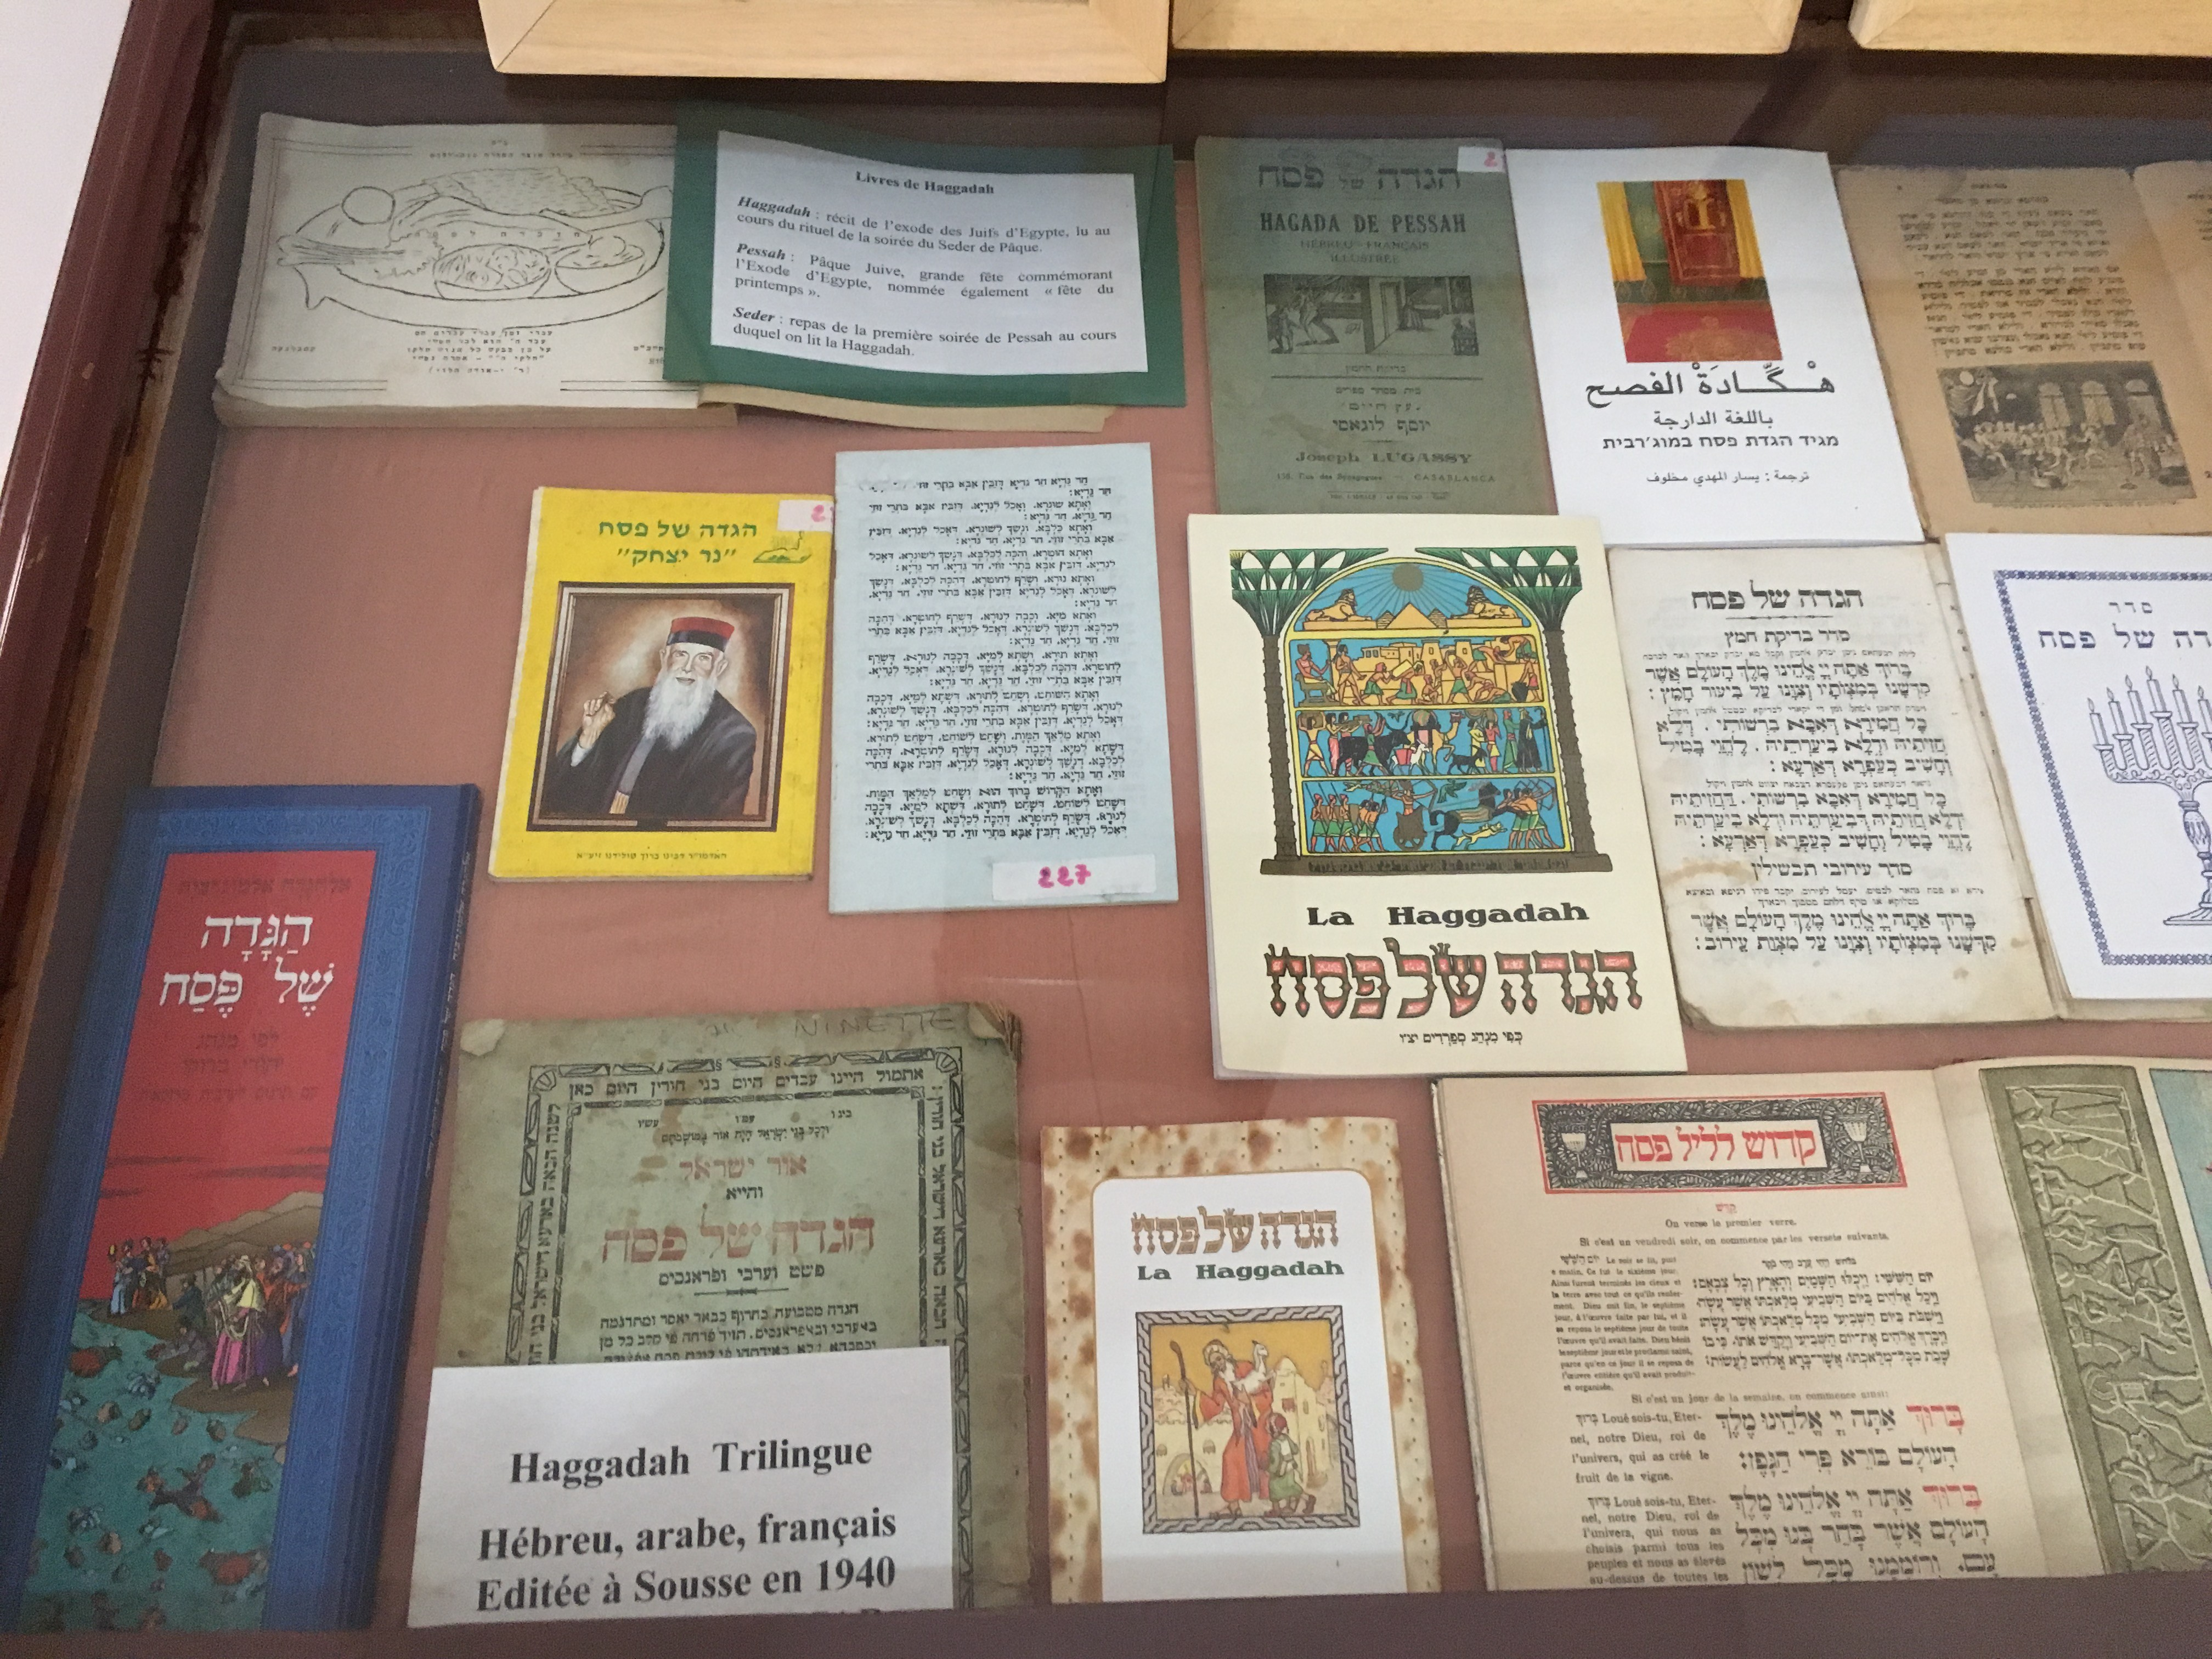 A collection of Moroccan Jewish books in the museum